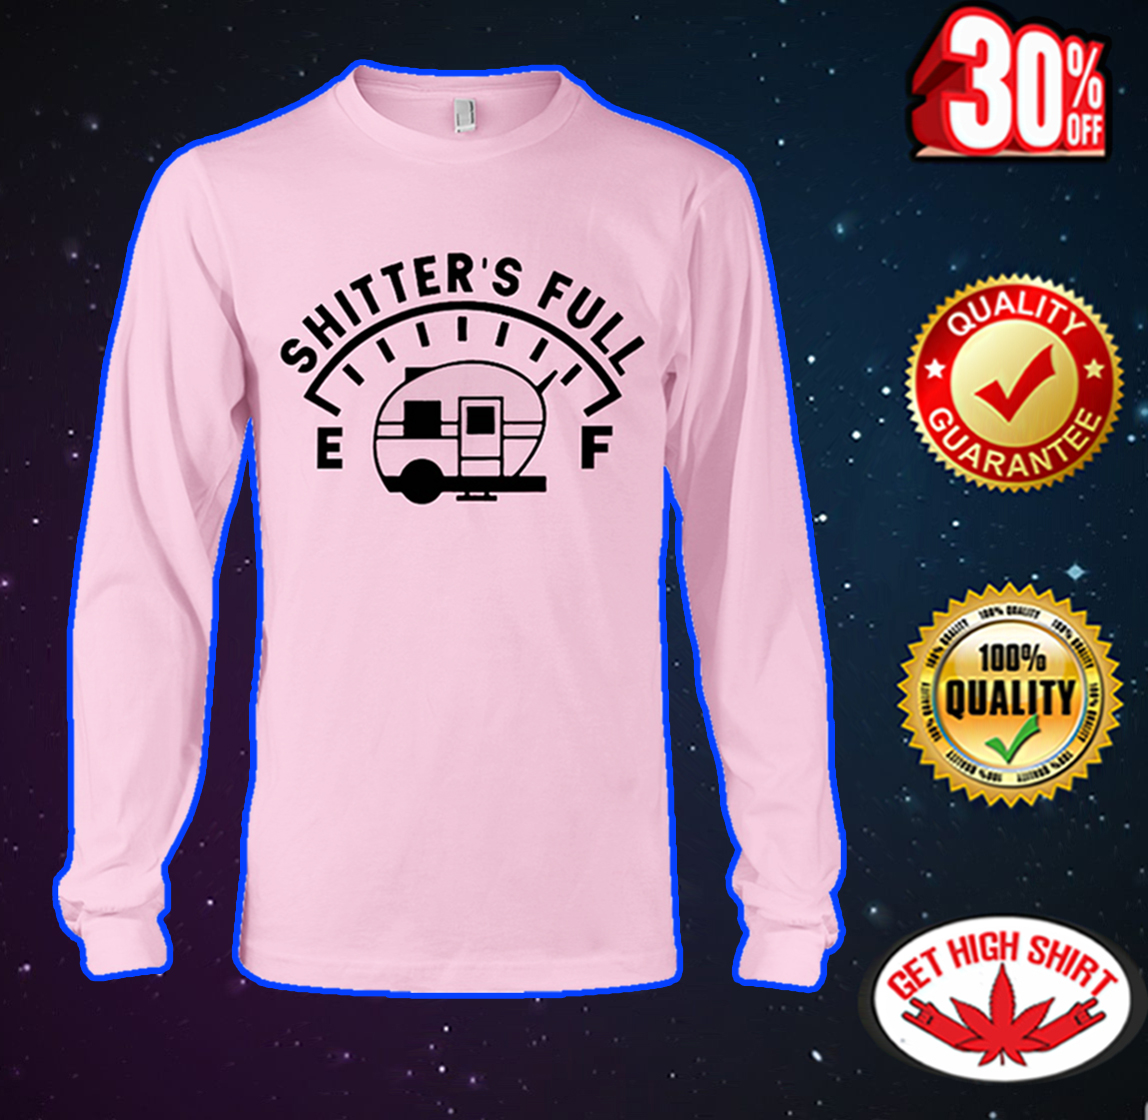 Shitter's full camping long sleeve tee